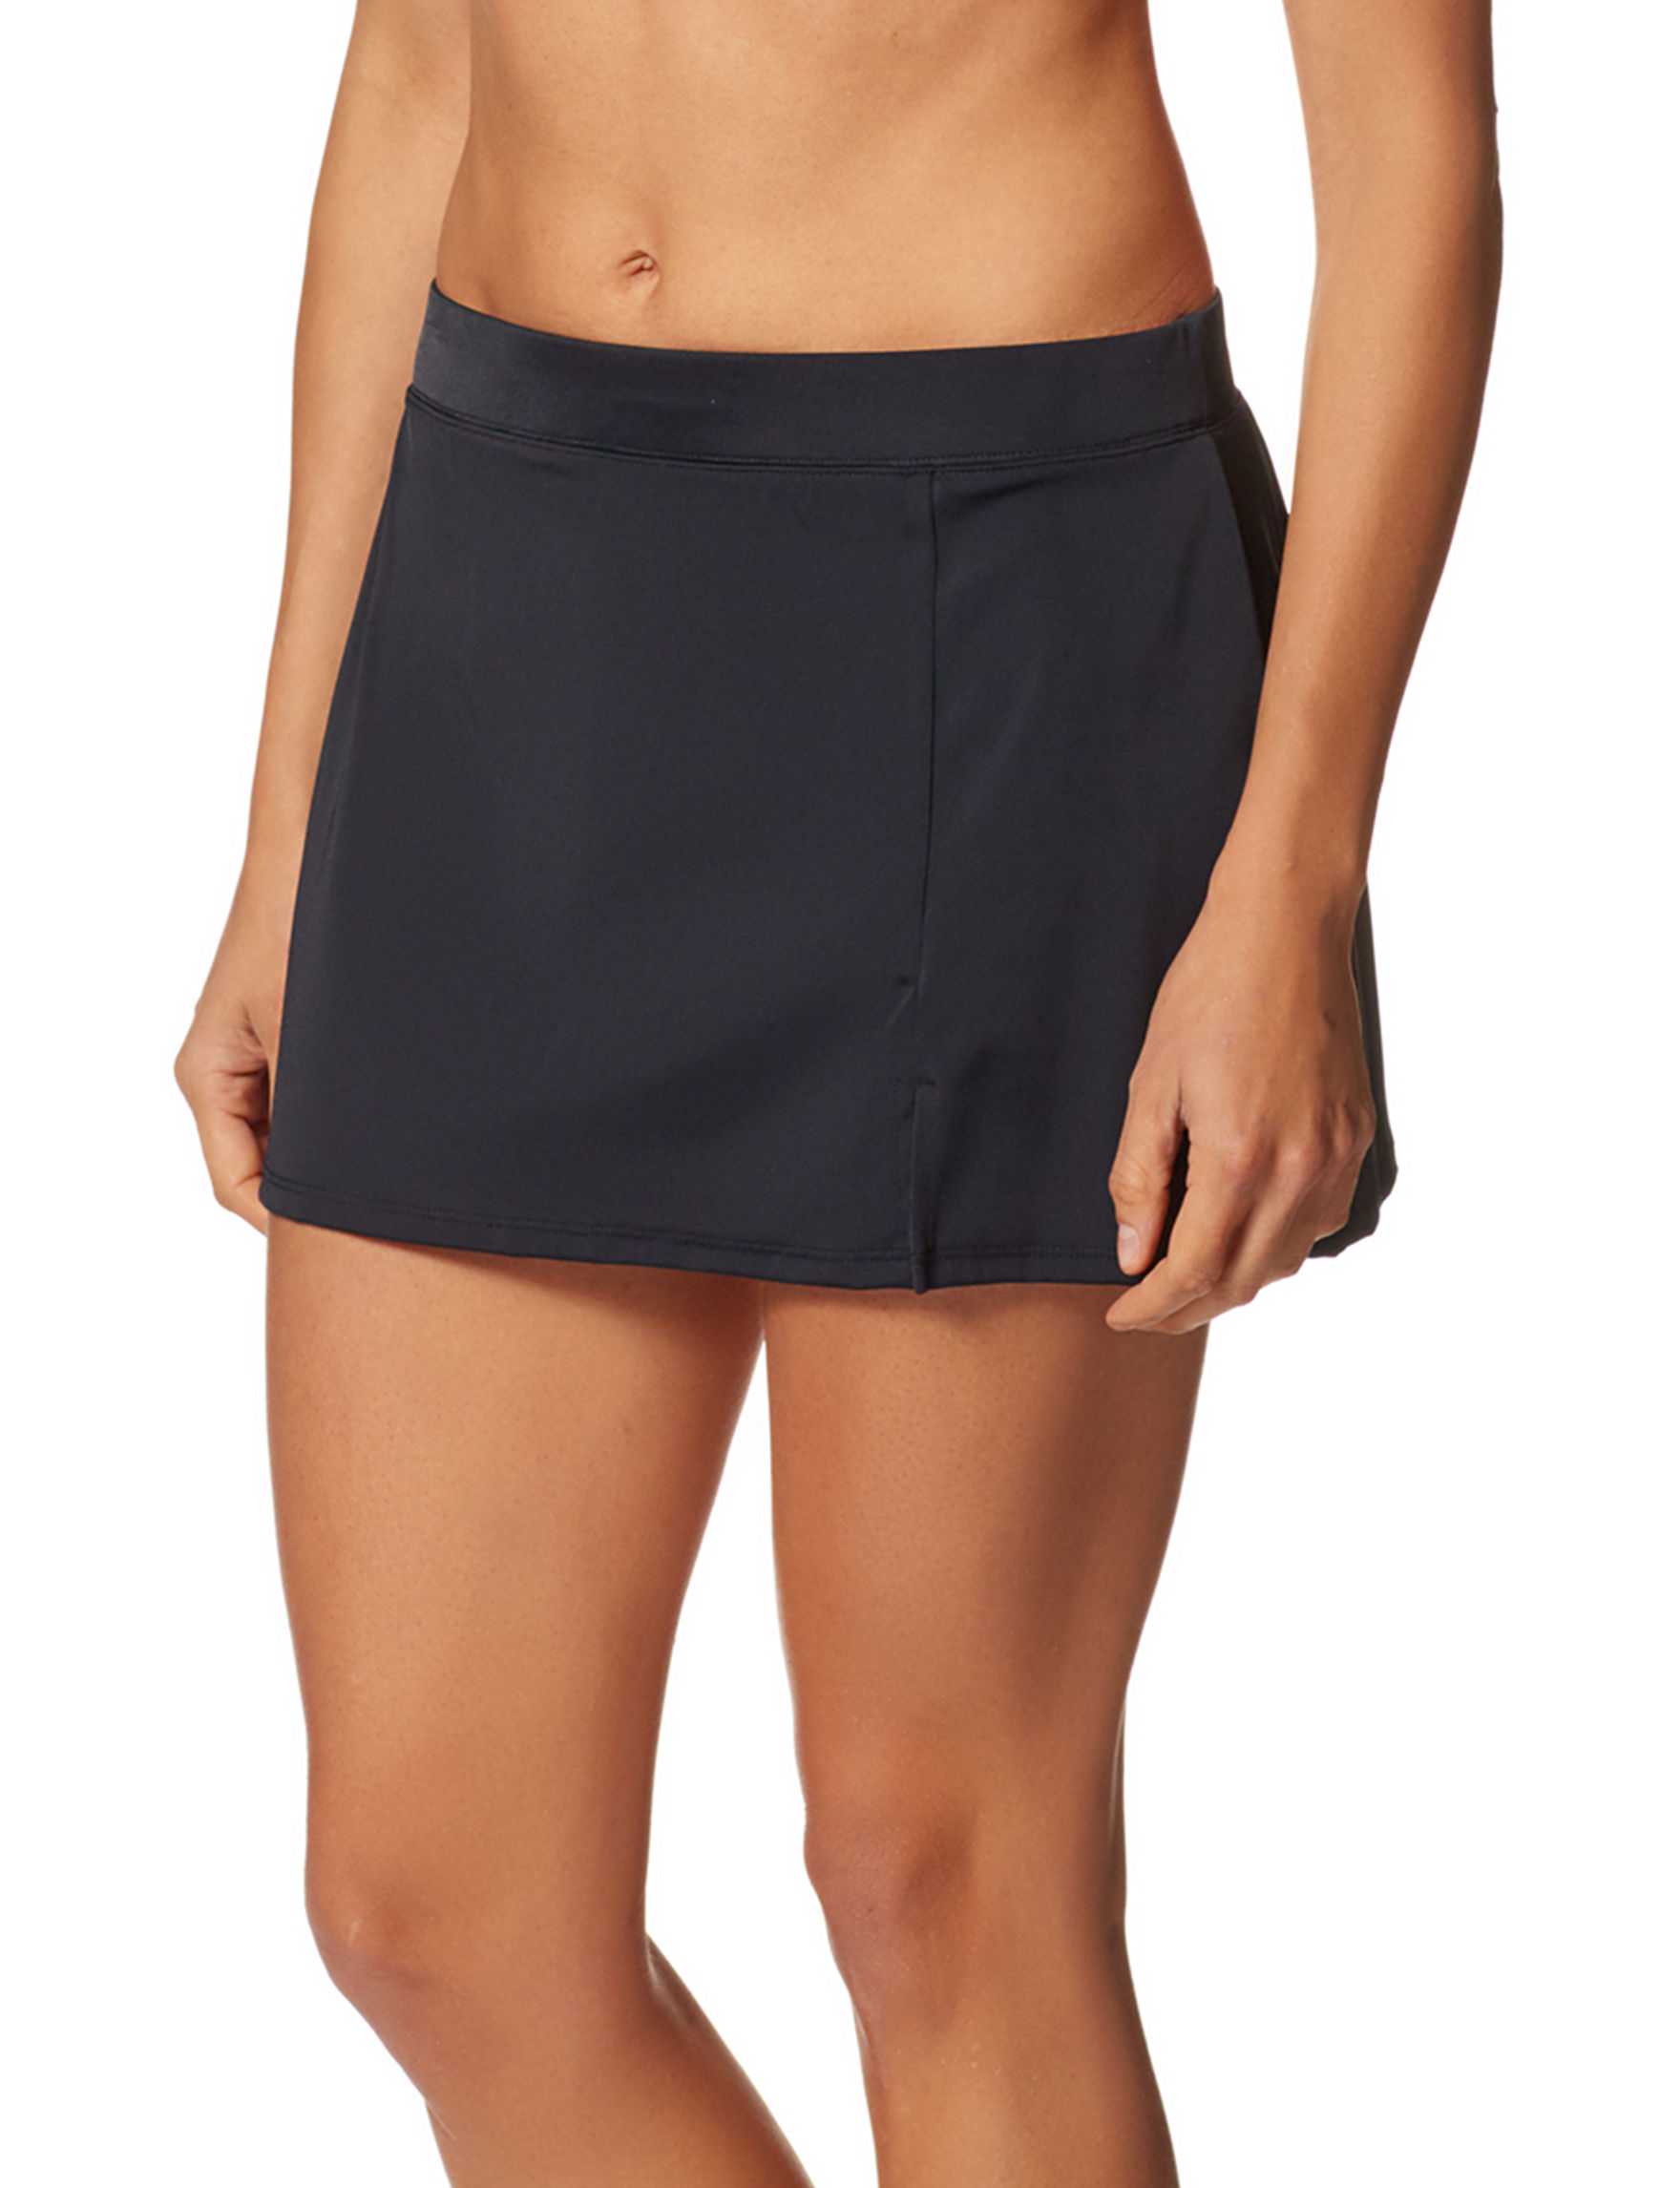 Caribbean Joe Black Swimsuit Bottoms Skirtini